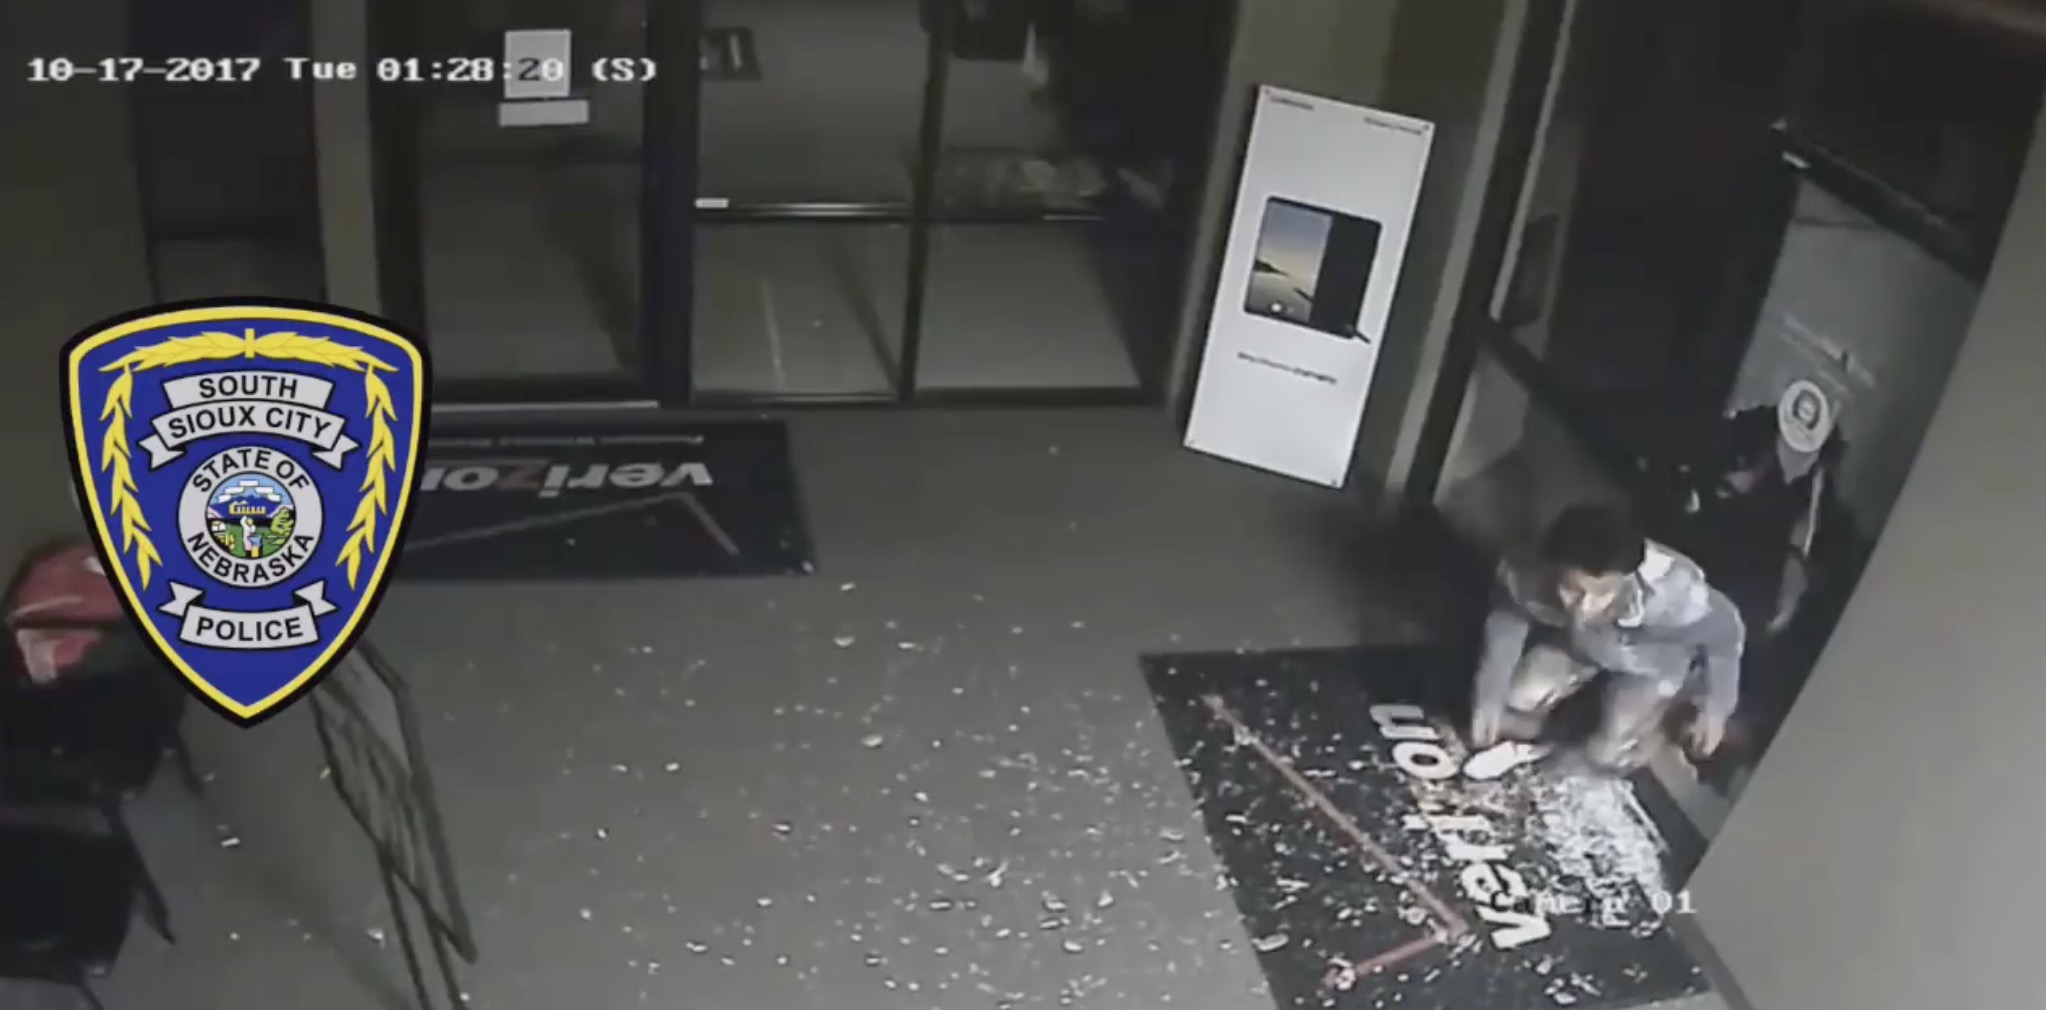 South Sioux Verizon store burglarized police searching for 4 individuals